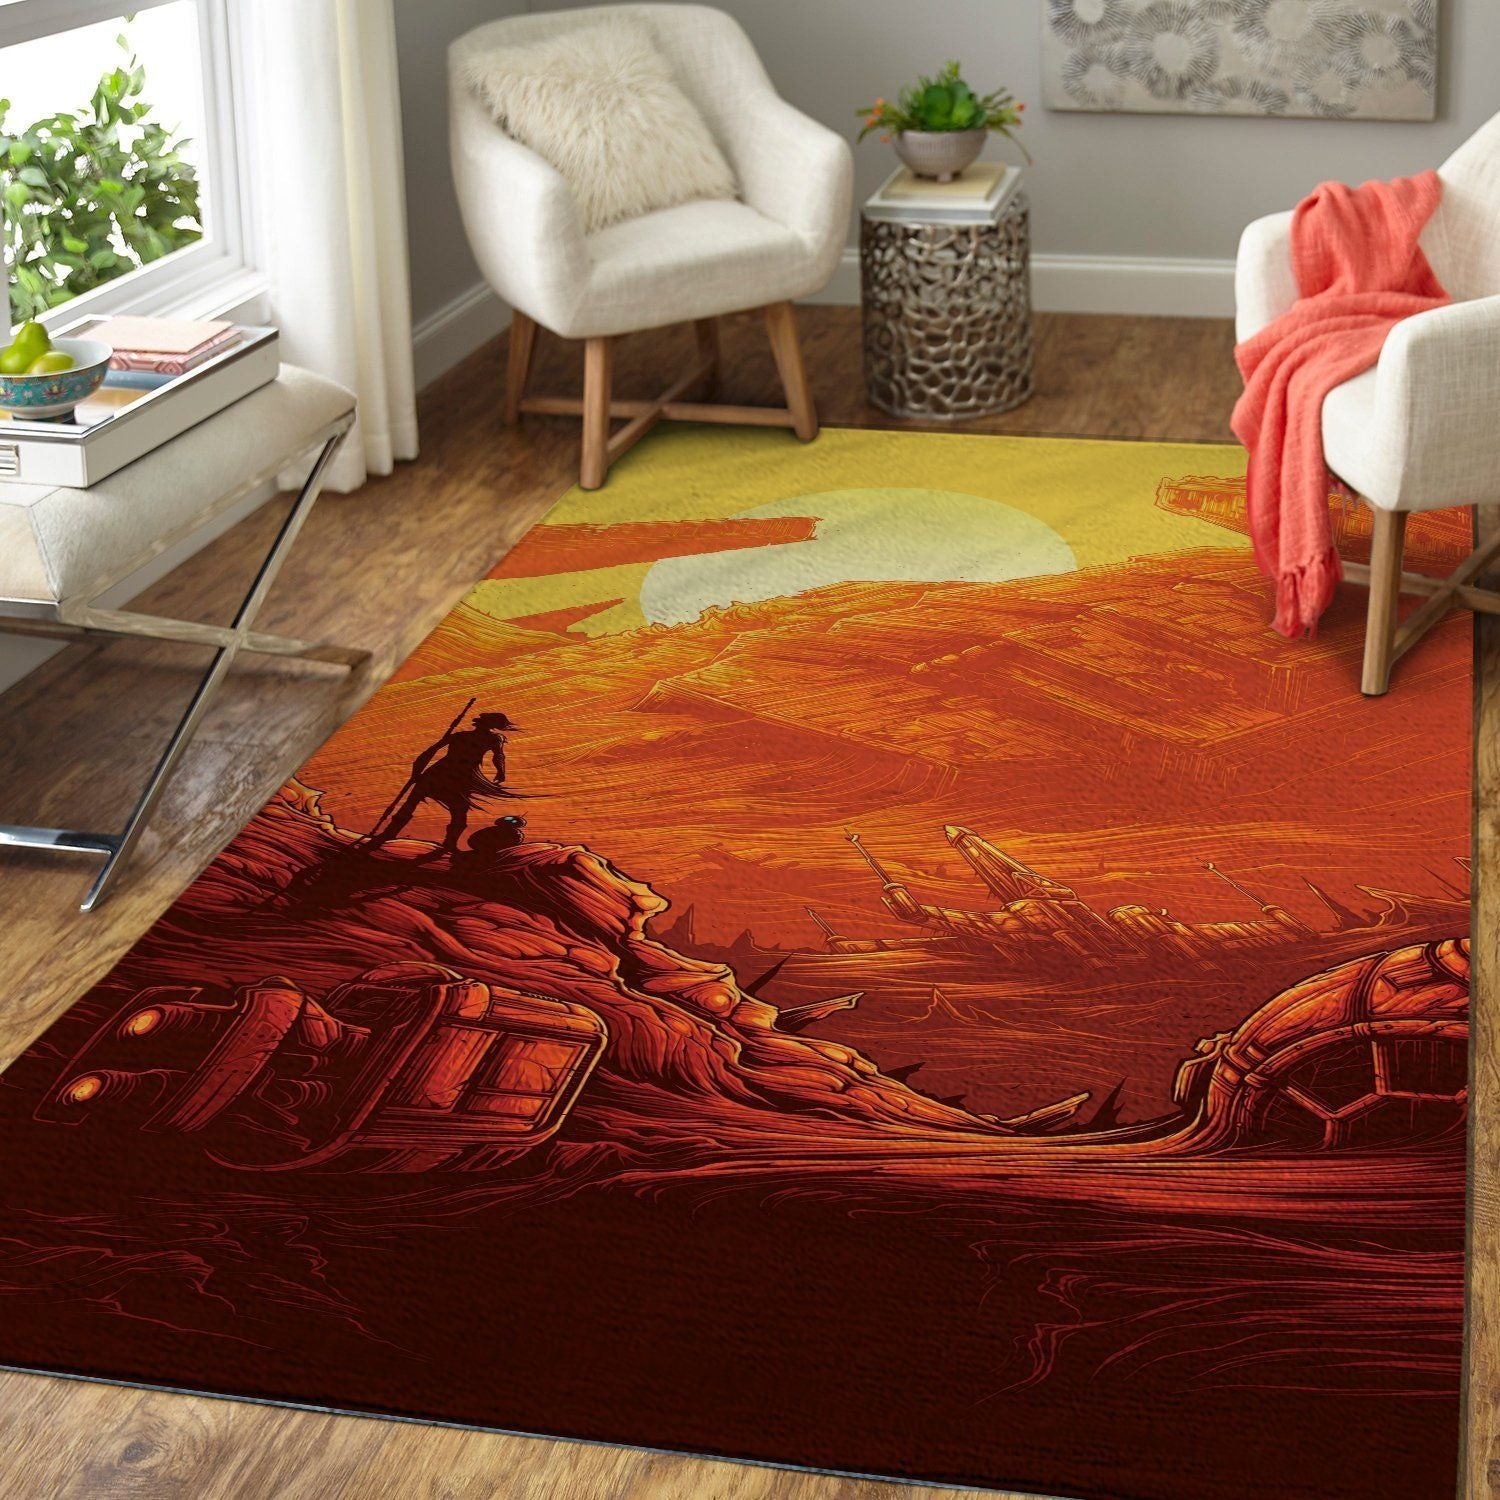 Star Wars Area Rug - The Force Awakens / Movie Floor Decor 190901C